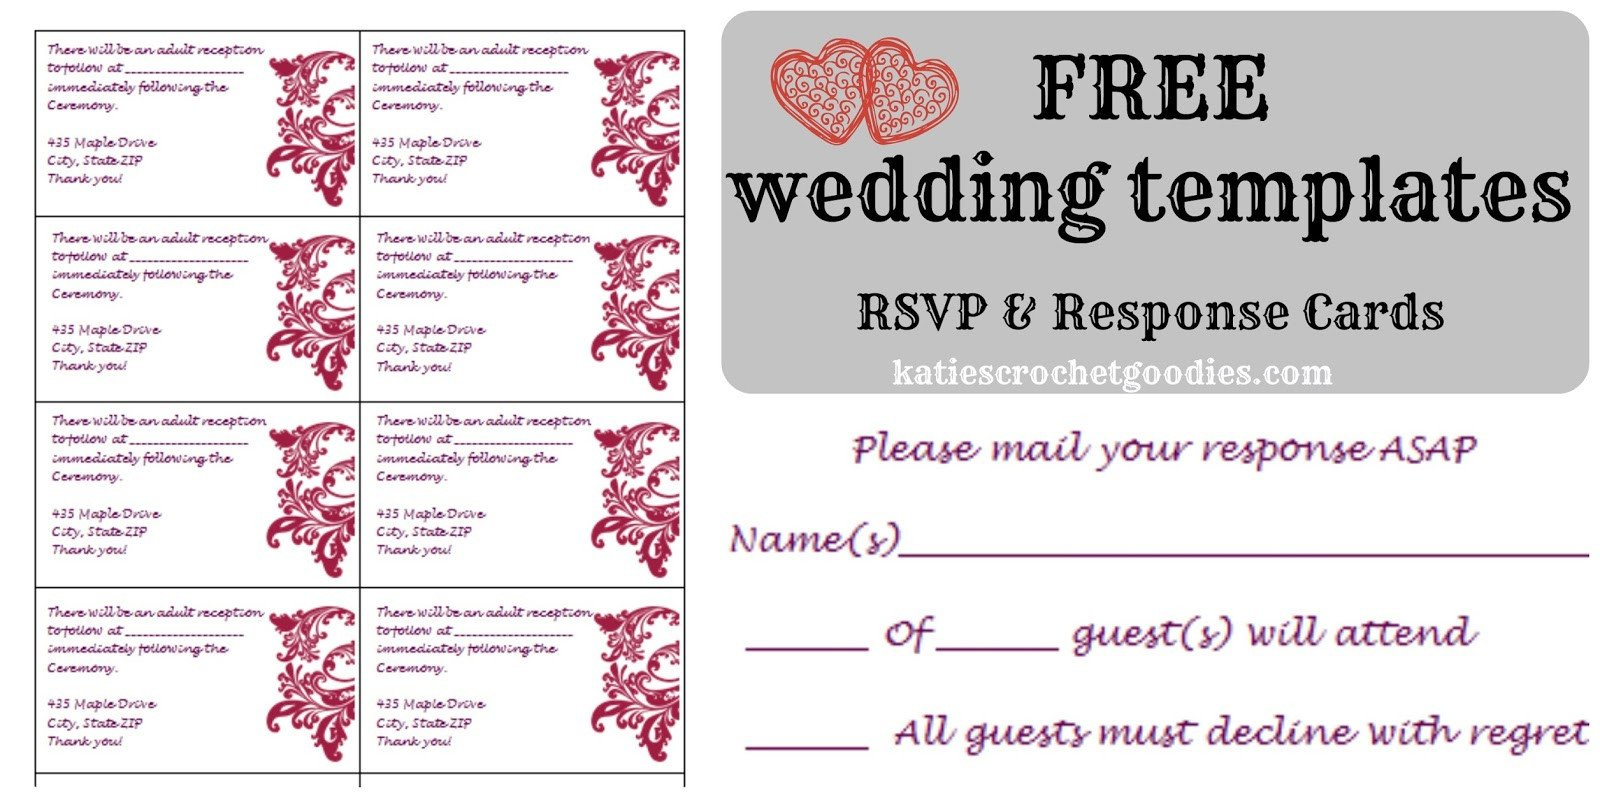 Wedding Card Template Free Download Free Wedding Templates Rsvp & Reception Cards Katie S